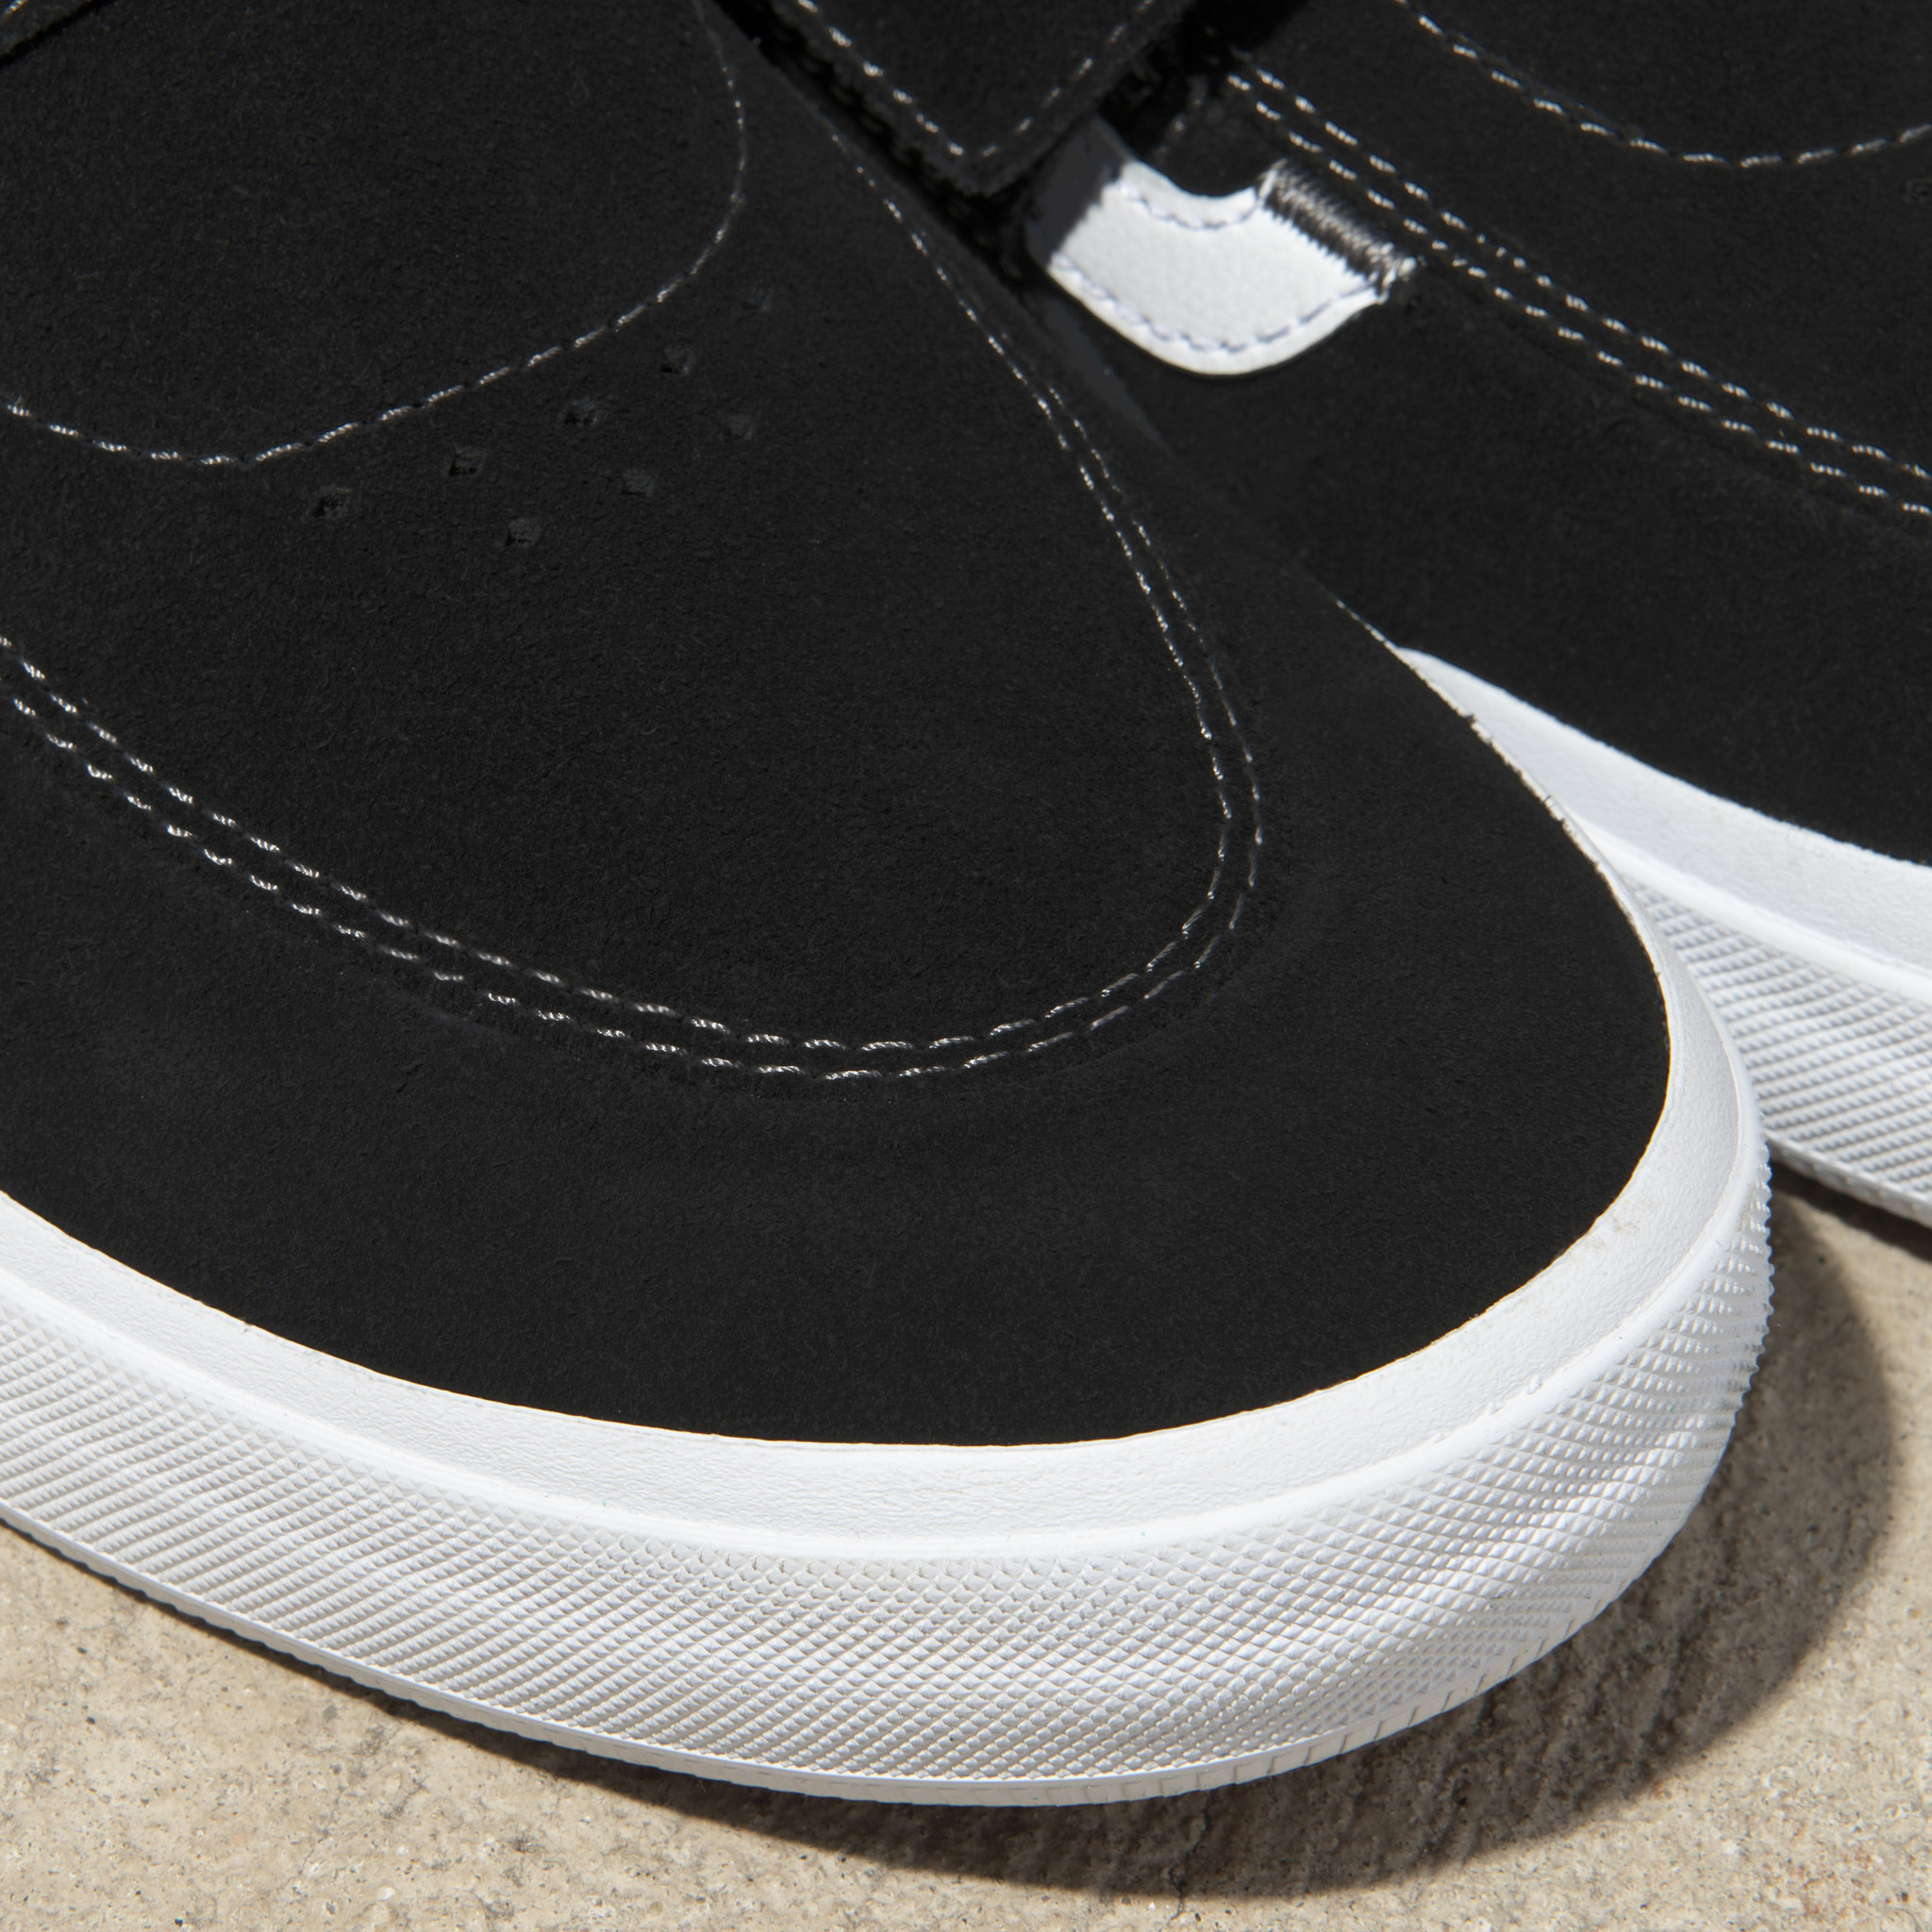 Vans Kyle Walker pro 2 shoes online canada black